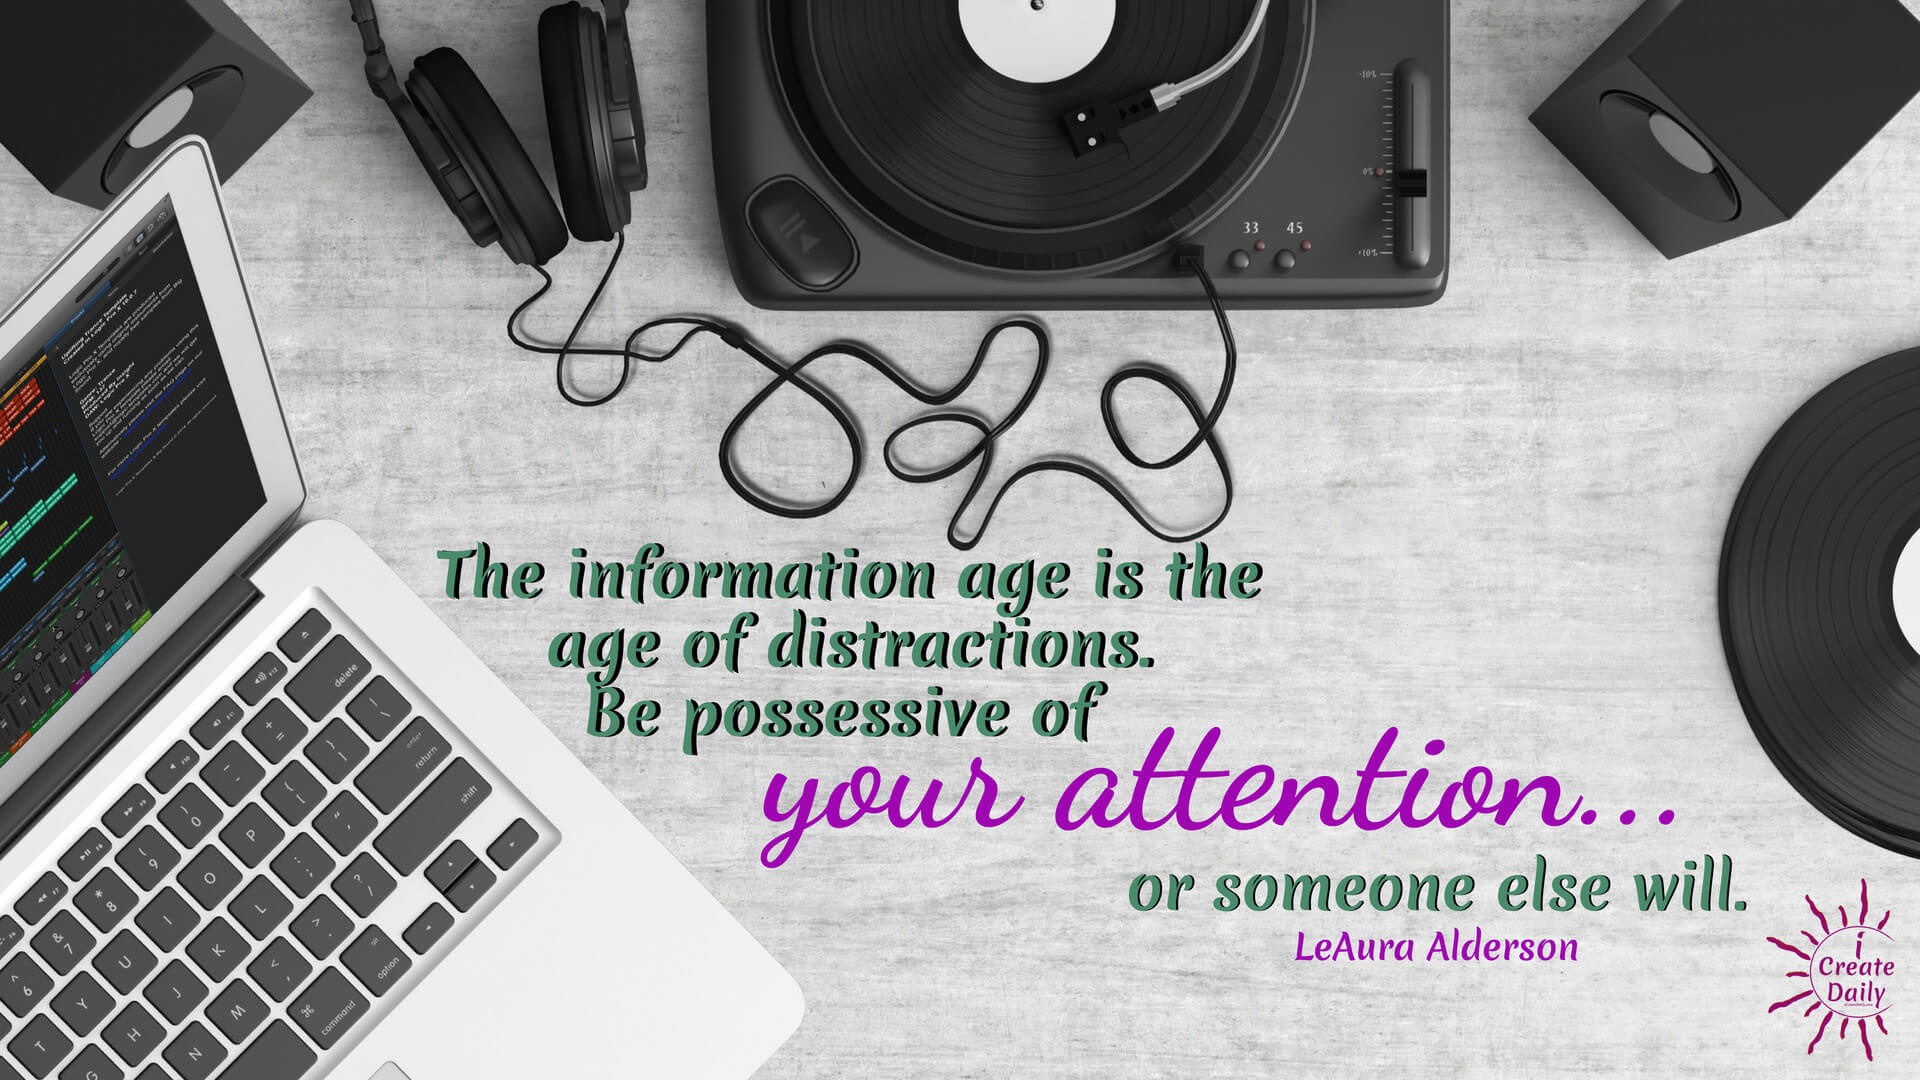 Distractions are not your fault... but they are your responsibility. The proliferation of junk food that line the many aisles and shelves of grocery stores today isn't your fault either. But if you... #InformationAge #Attention #BusyBrainSyndrome #Distractions #Quotes #Multitasking #ADD #ADHD #Forgetfulness #Distractedness